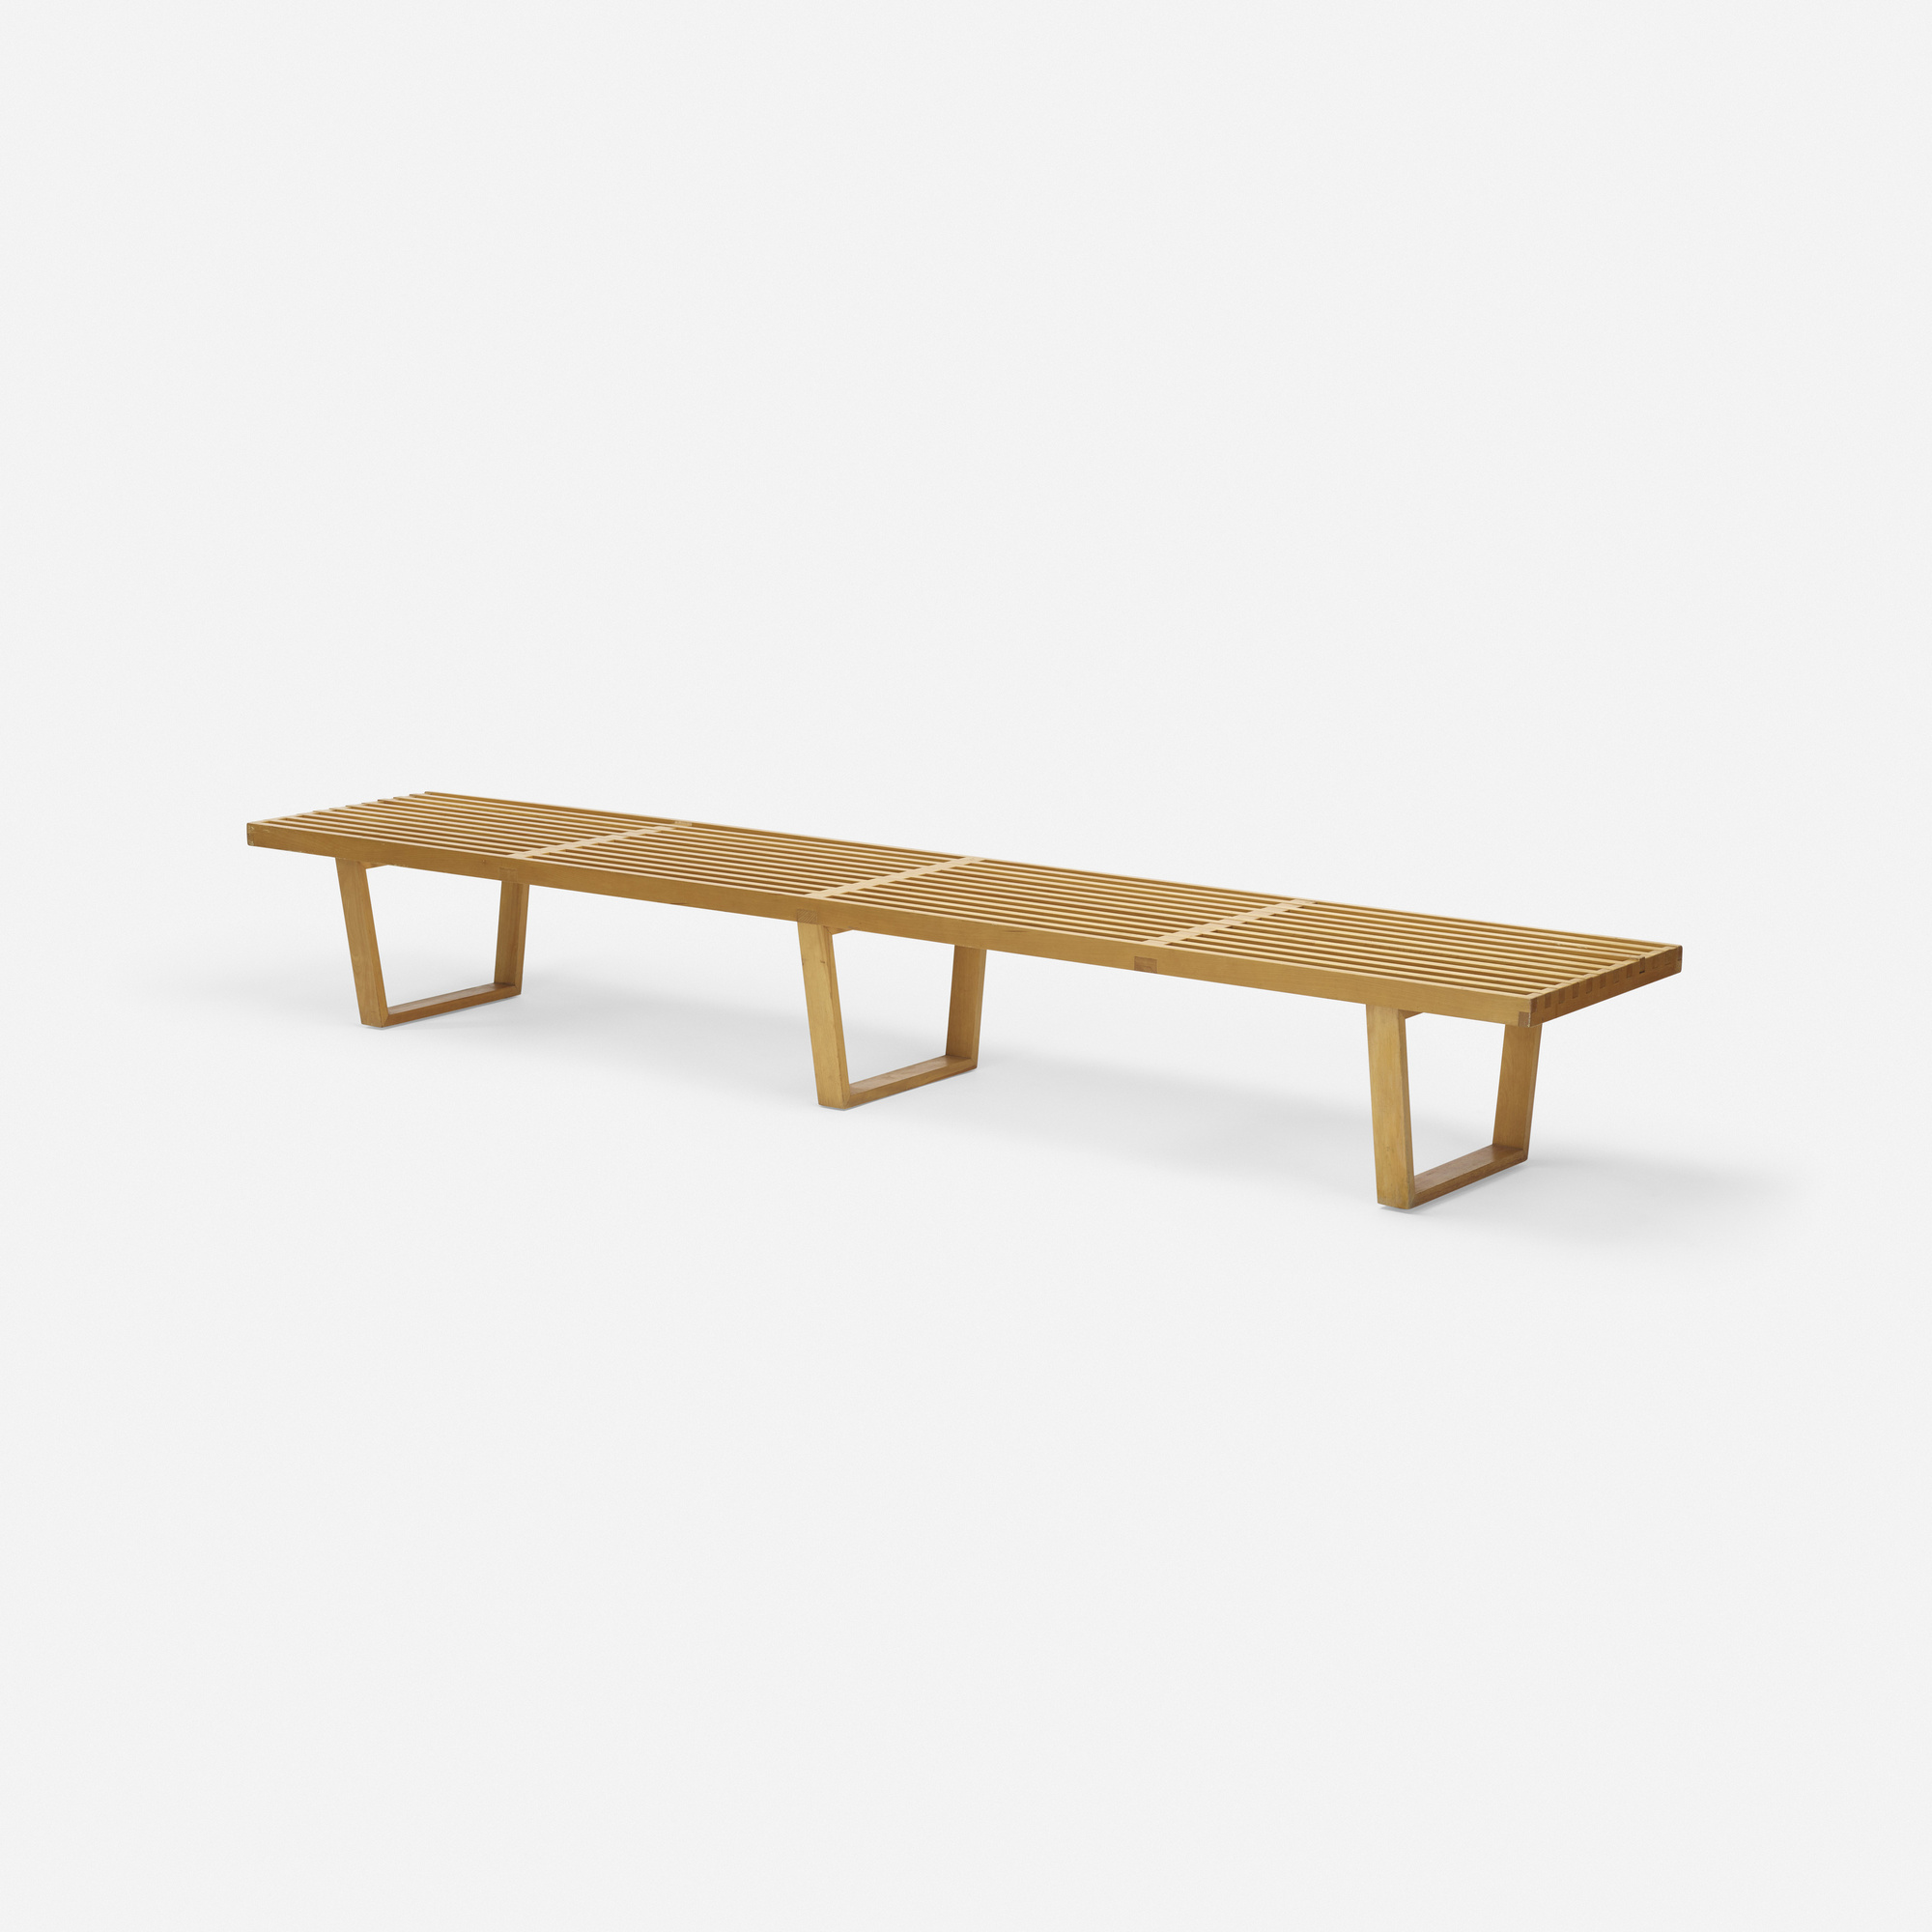 474 George Nelson & Associates Slat bench model 4690 Mass